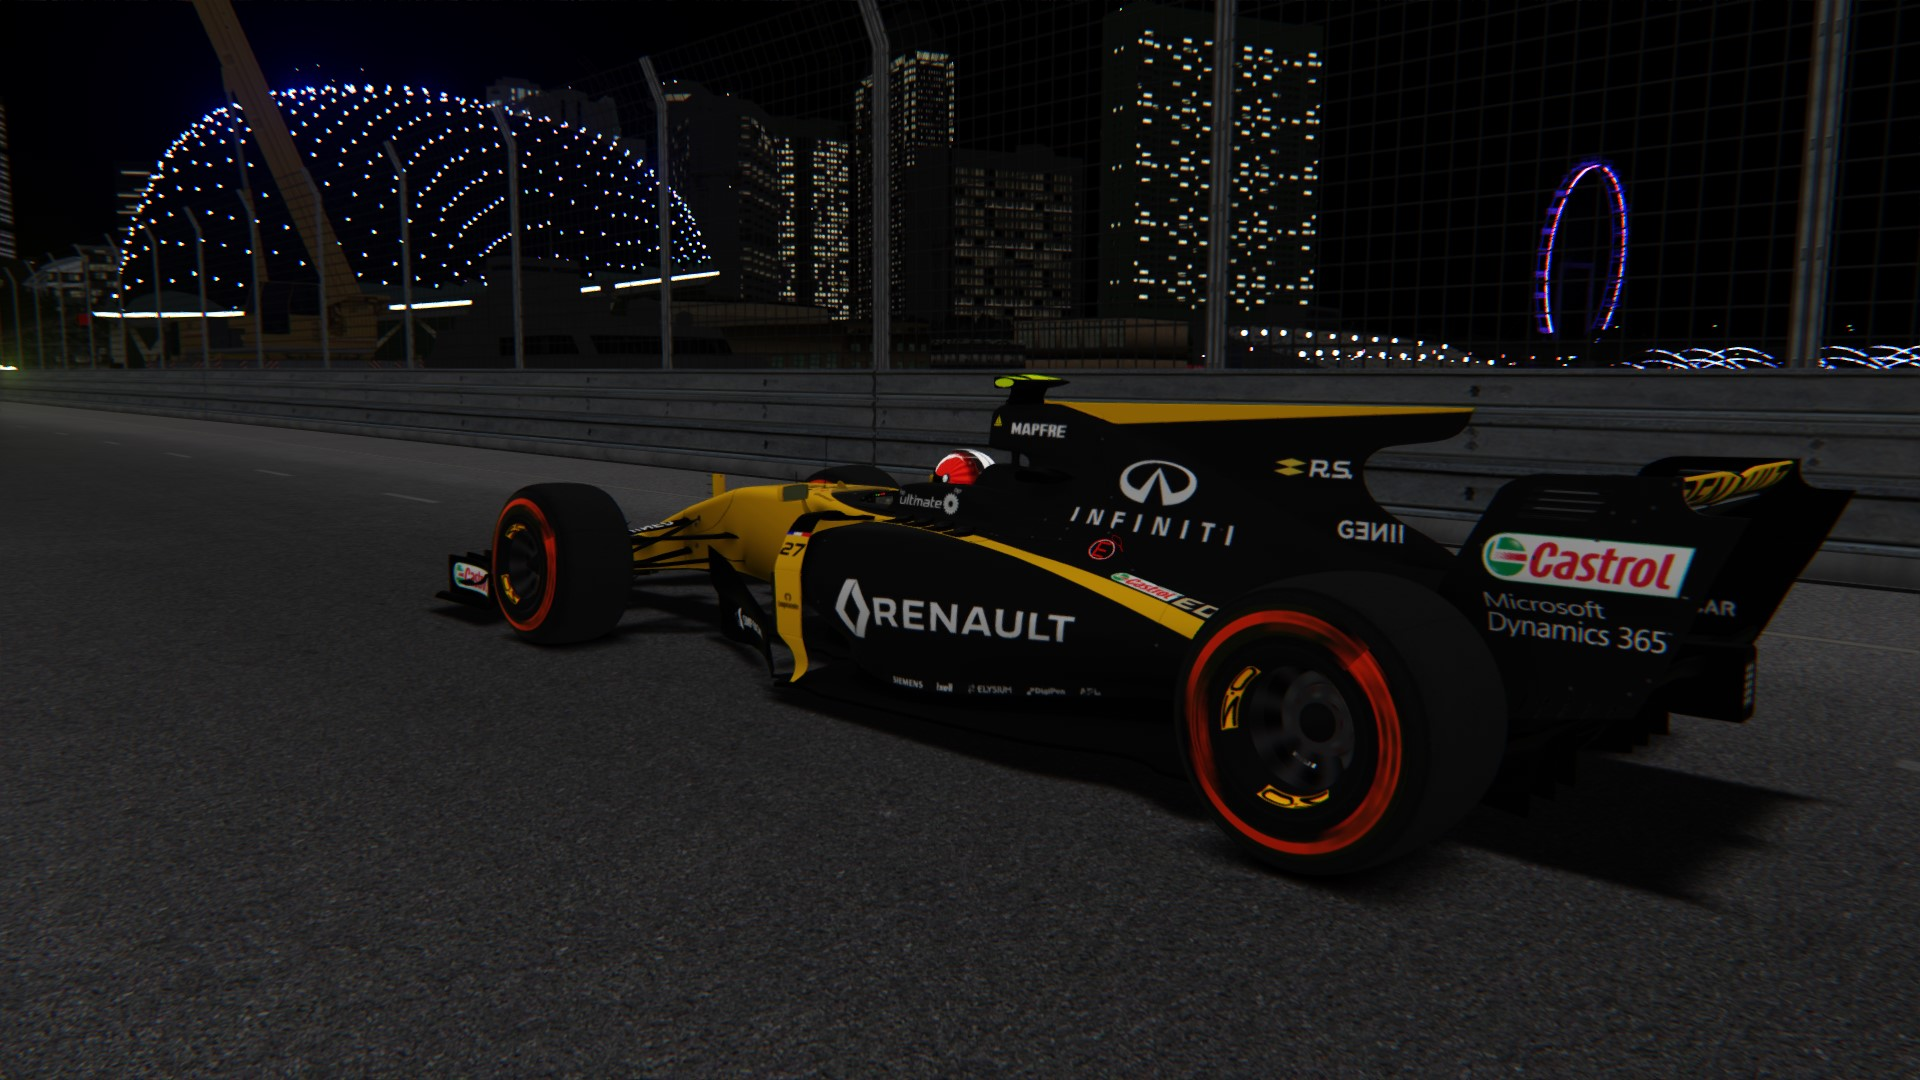 Screenshot_rss_formula_hybrid_2017_s1_acu_singapore_6-4-117-22-29-34.jpg